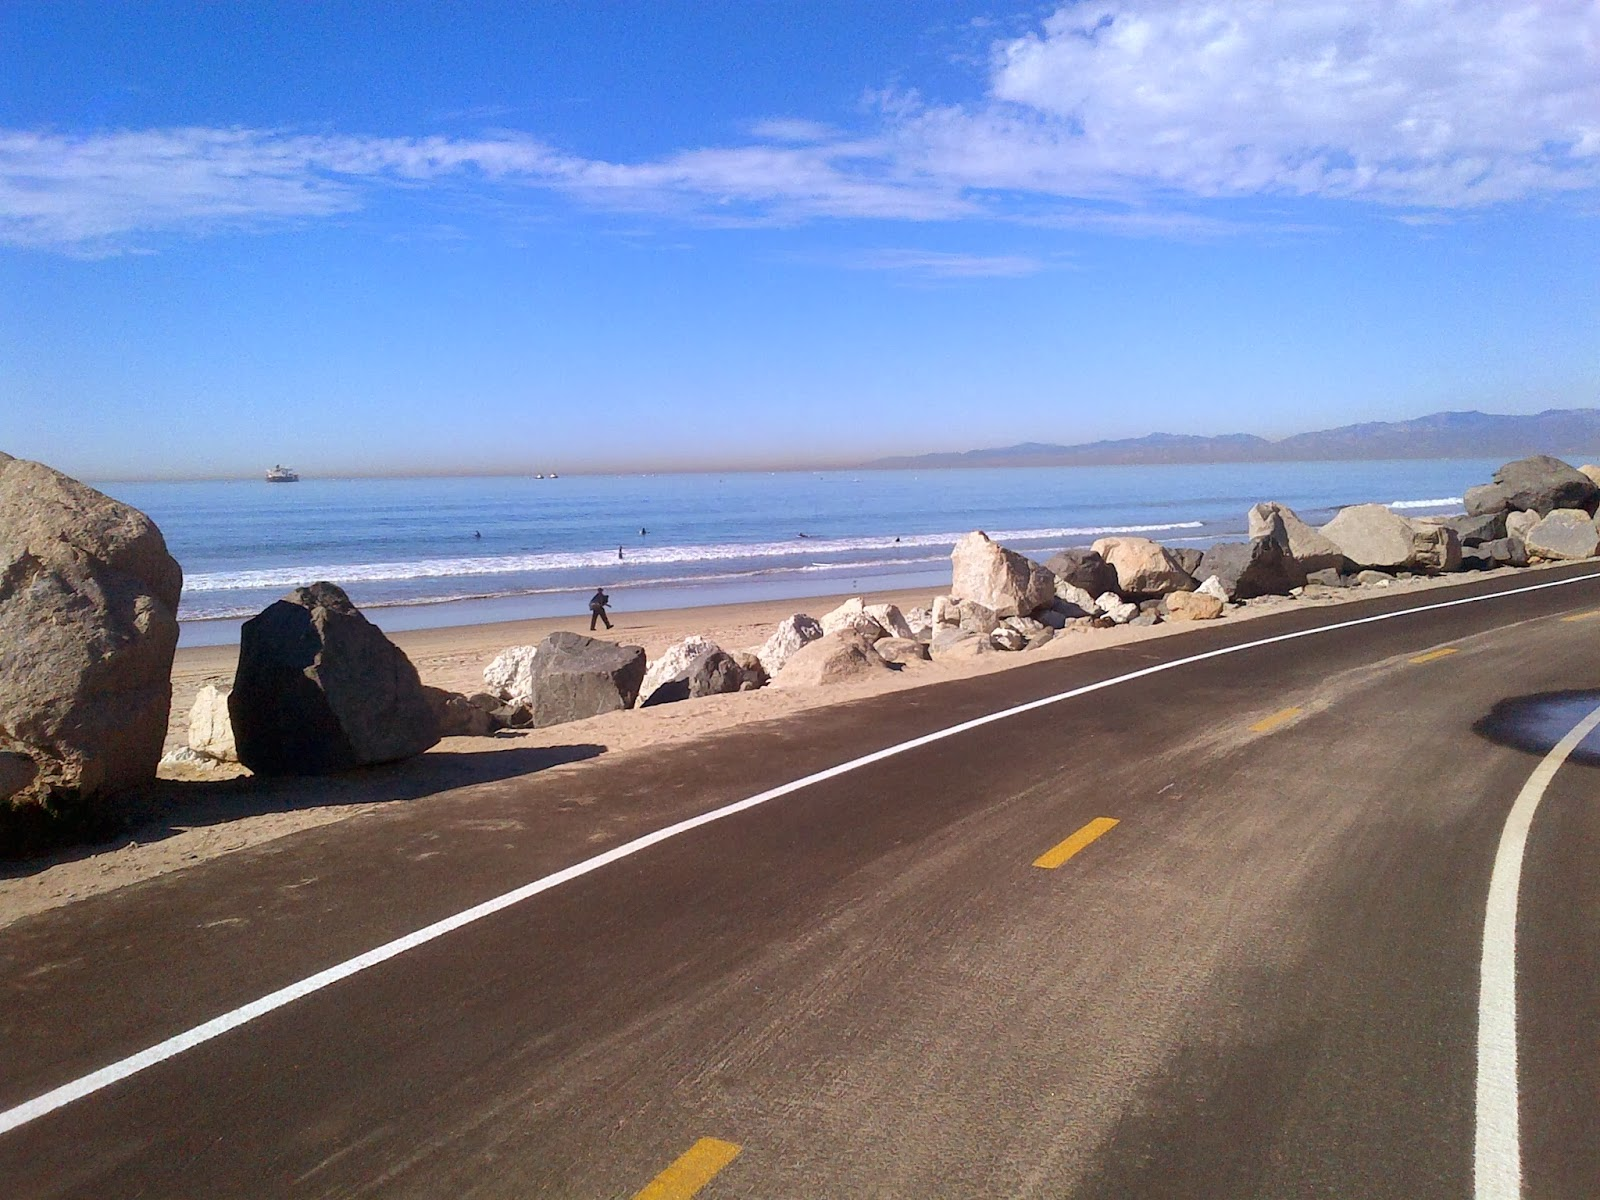 bike path, oceanside, beach view, shoreline, black pavement, black asphalt, california coast, venice beach, hermosia beach, manhatten beach